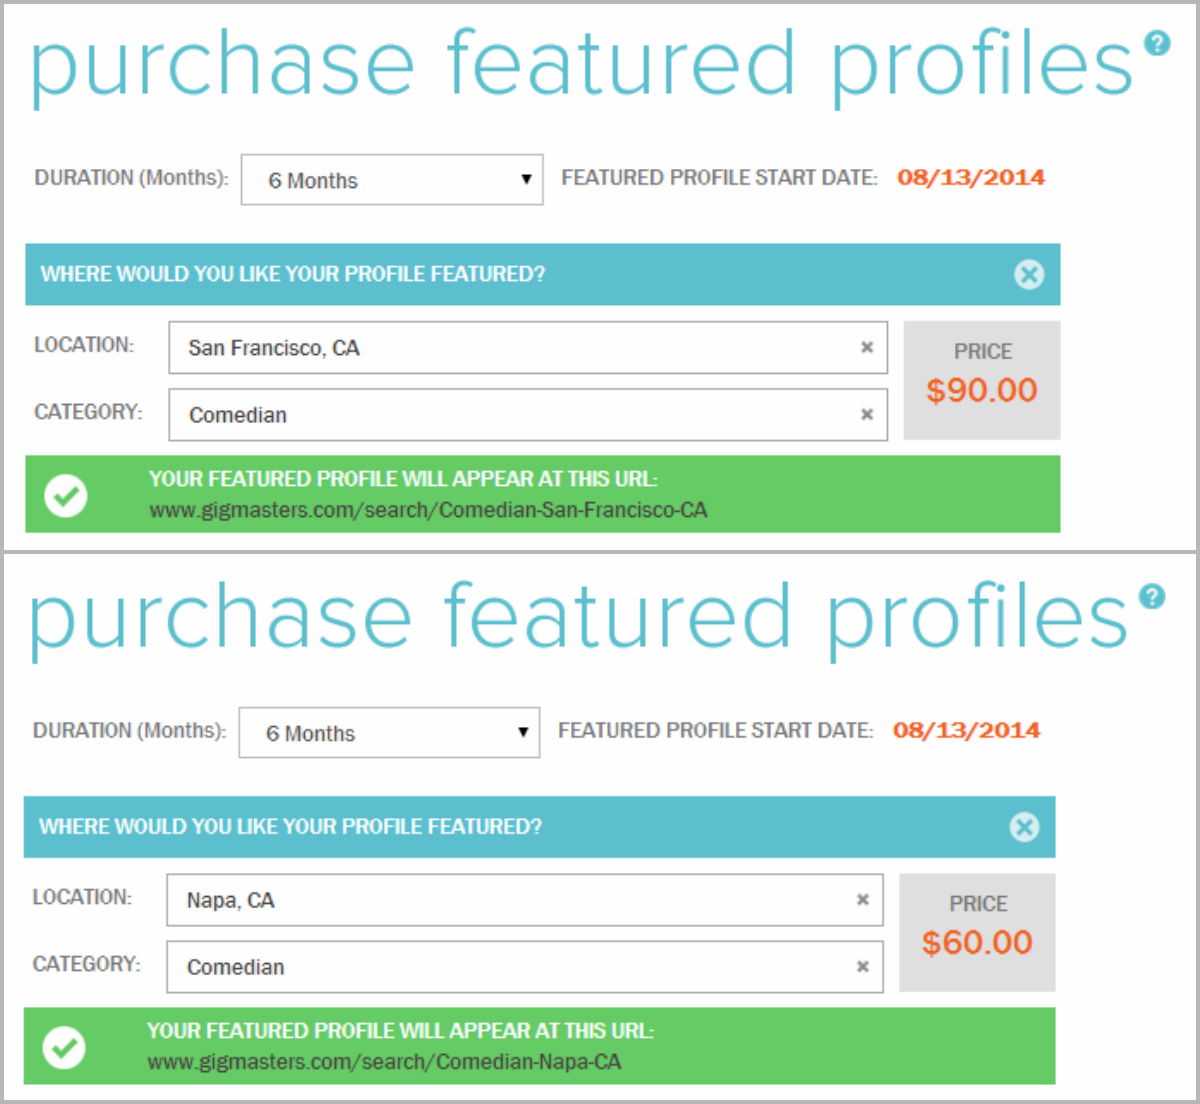 You can purchase Featured Profiles on your own with our self-checkout tool